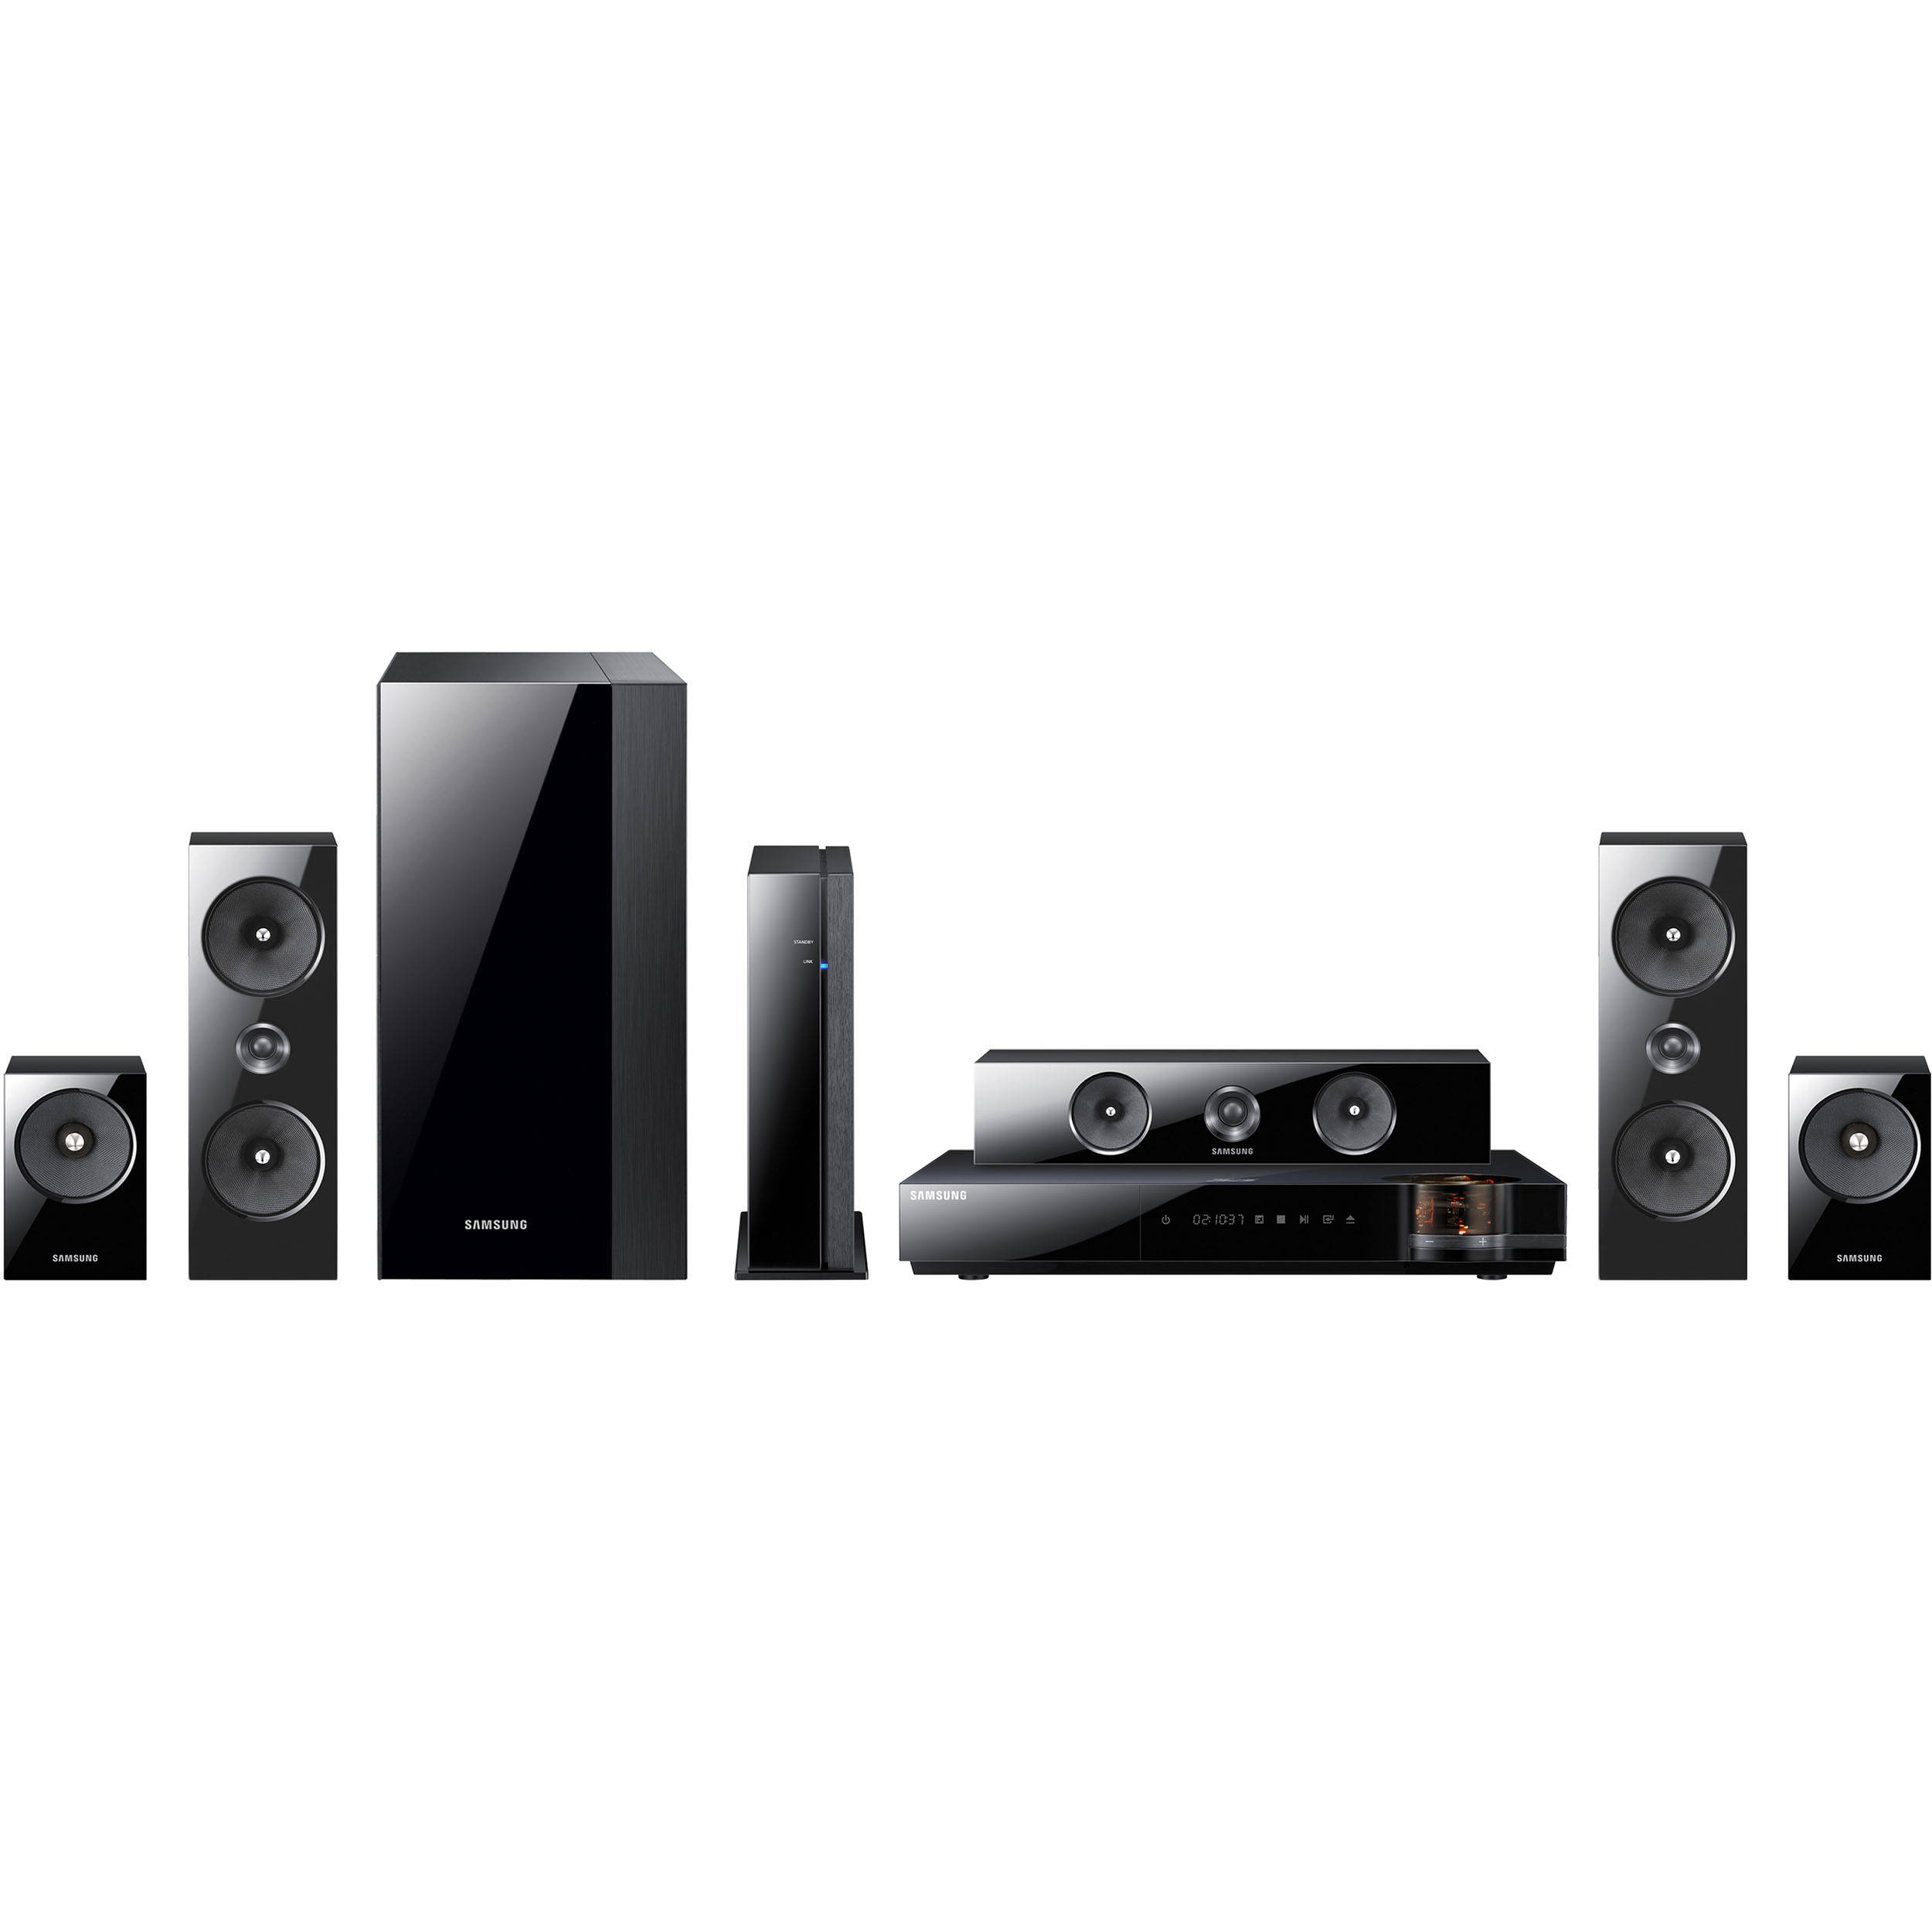 samsung ht e6500w blu ray home theater system. Black Bedroom Furniture Sets. Home Design Ideas